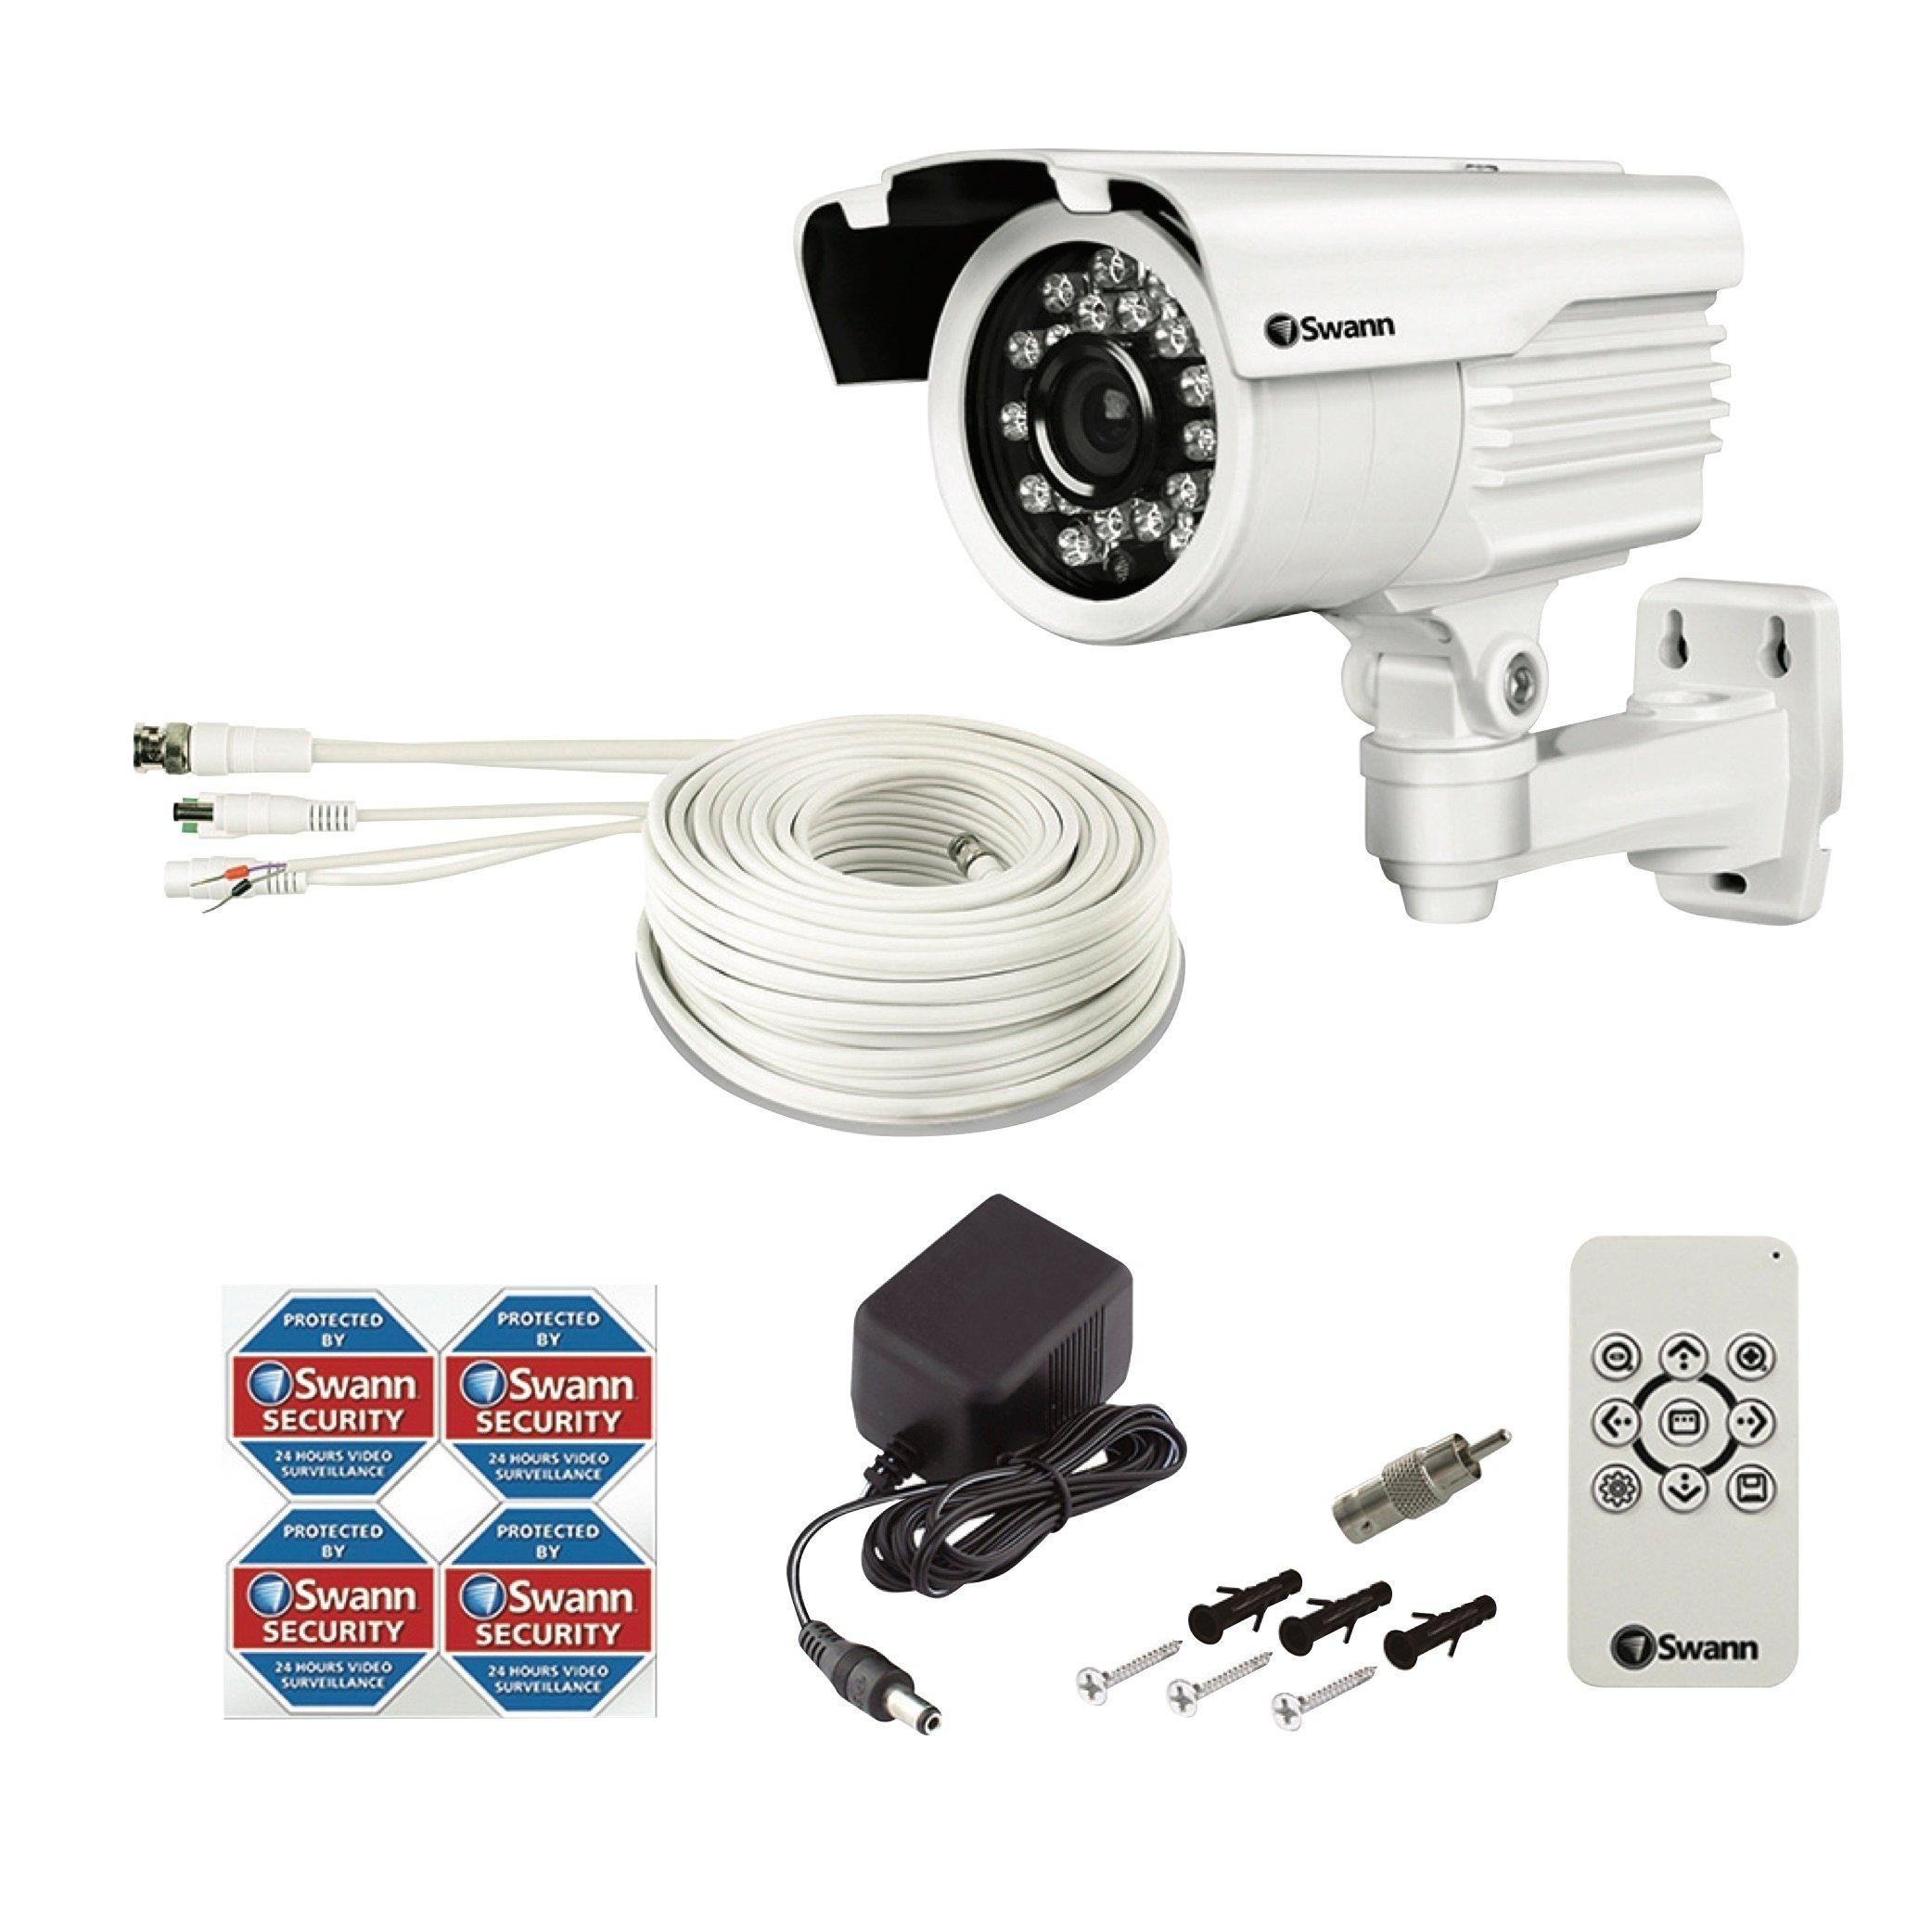 Swann Camera Wiring Diagram - Trusted Wiring Diagram Online - Swann Security Camera Wiring Diagram